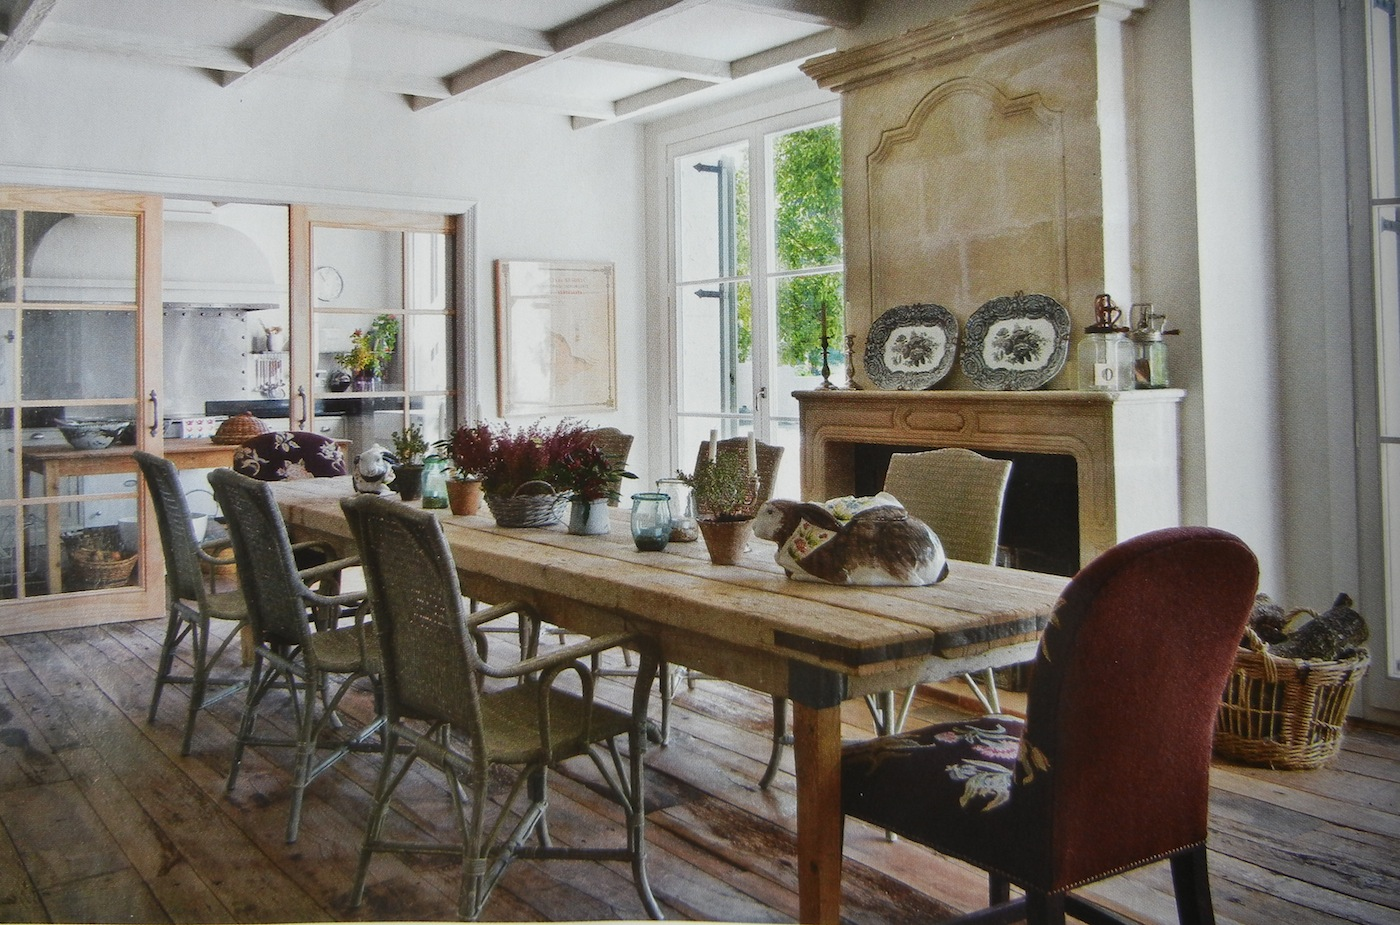 Auction decorating rustic dining tables in spain for Rustic dining room decorating ideas